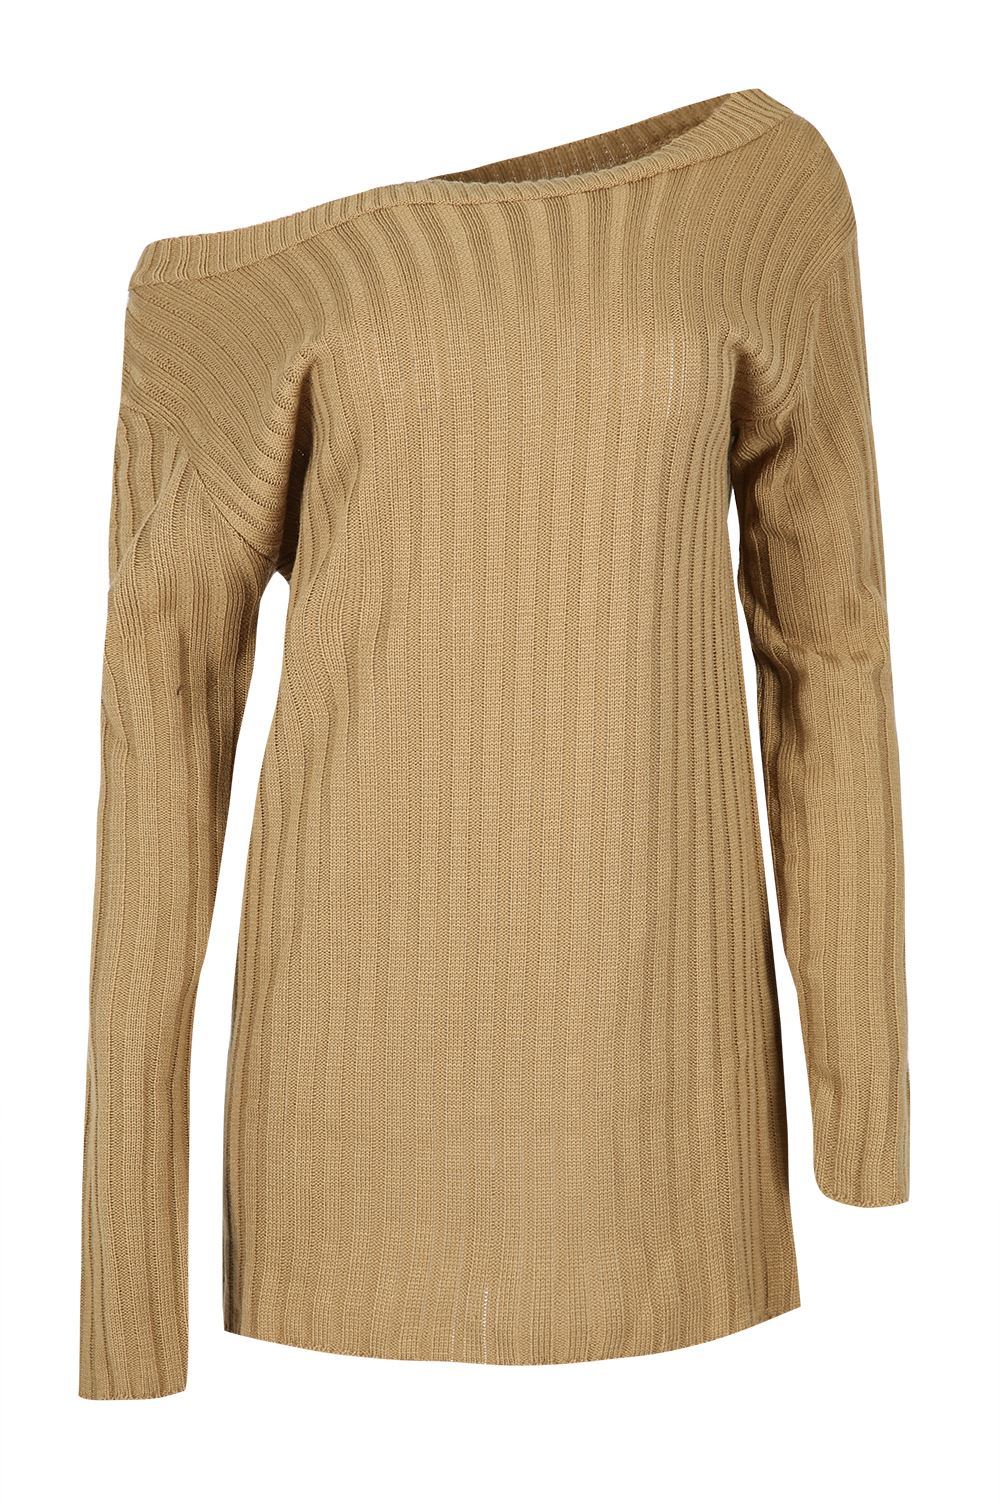 Womens-Oversized-Jumper-Ladies-Dress-Long-Sleeve-Chunky-Knitted-Long-Sweater-Top thumbnail 48